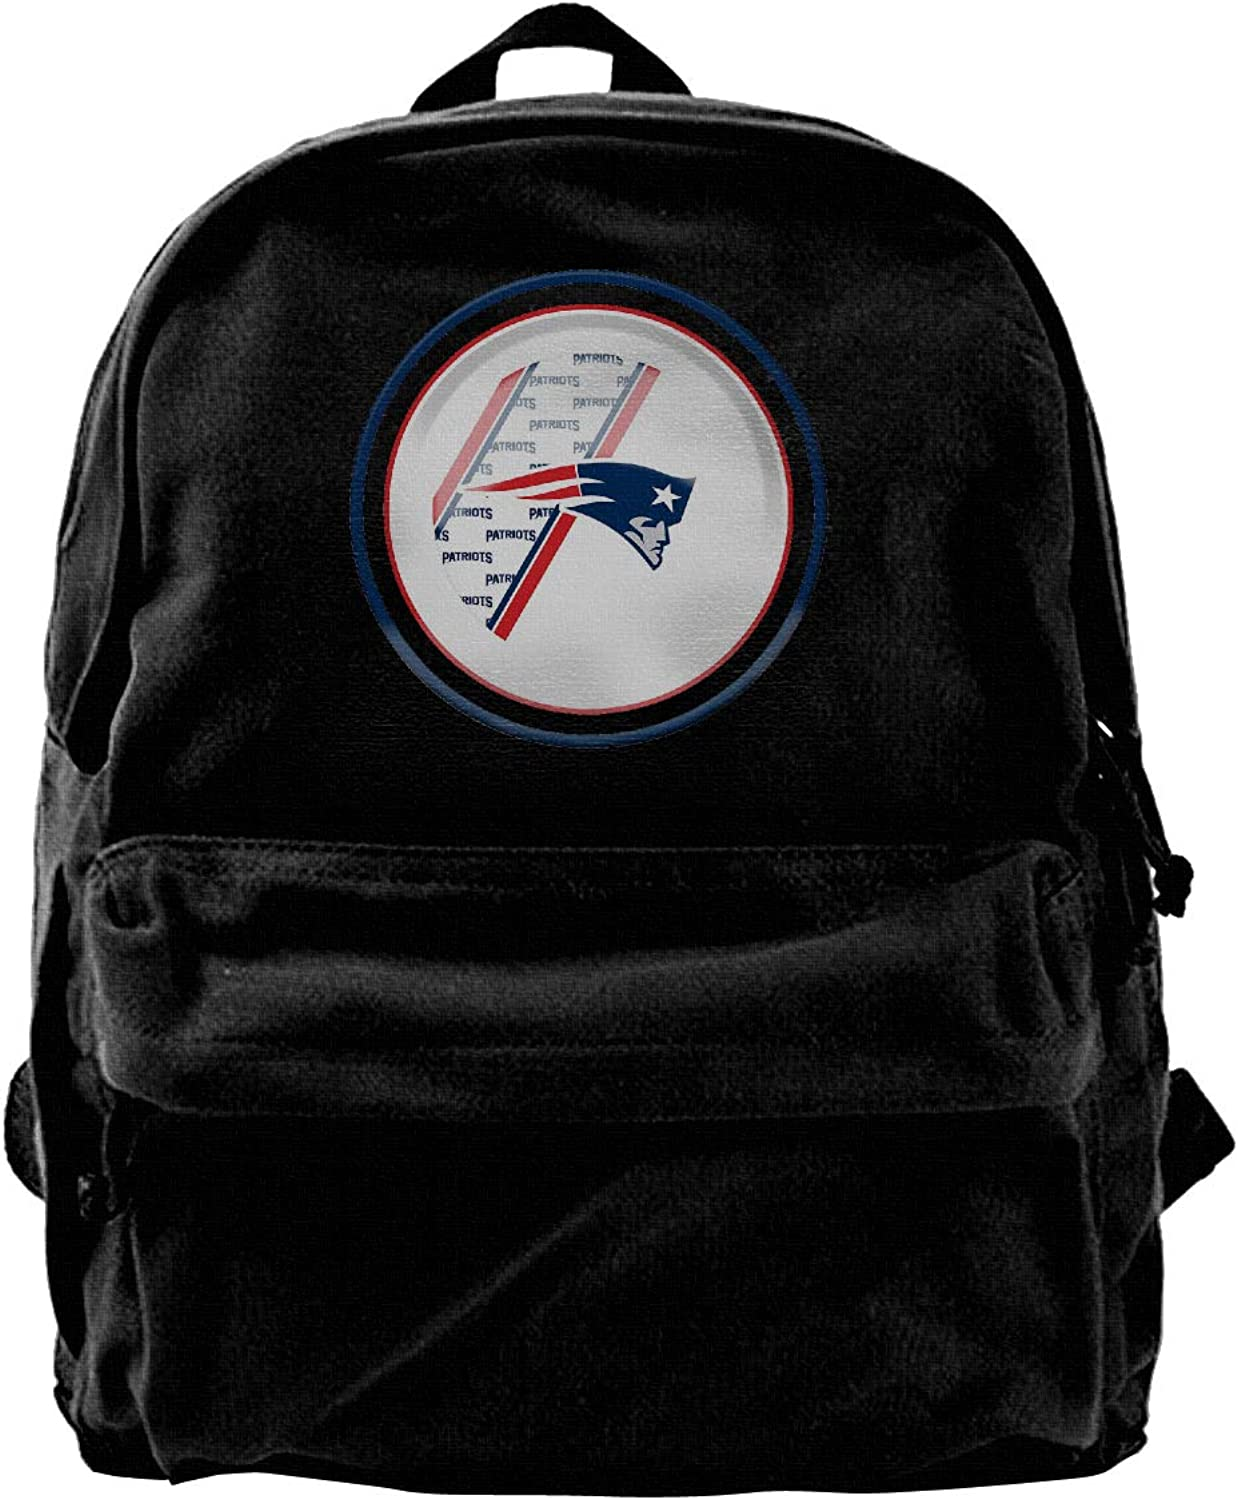 Canvas Backpack New-England-Patriots Round Sign 14 Inch Laptop Casual School College Bags Travel Rucksack